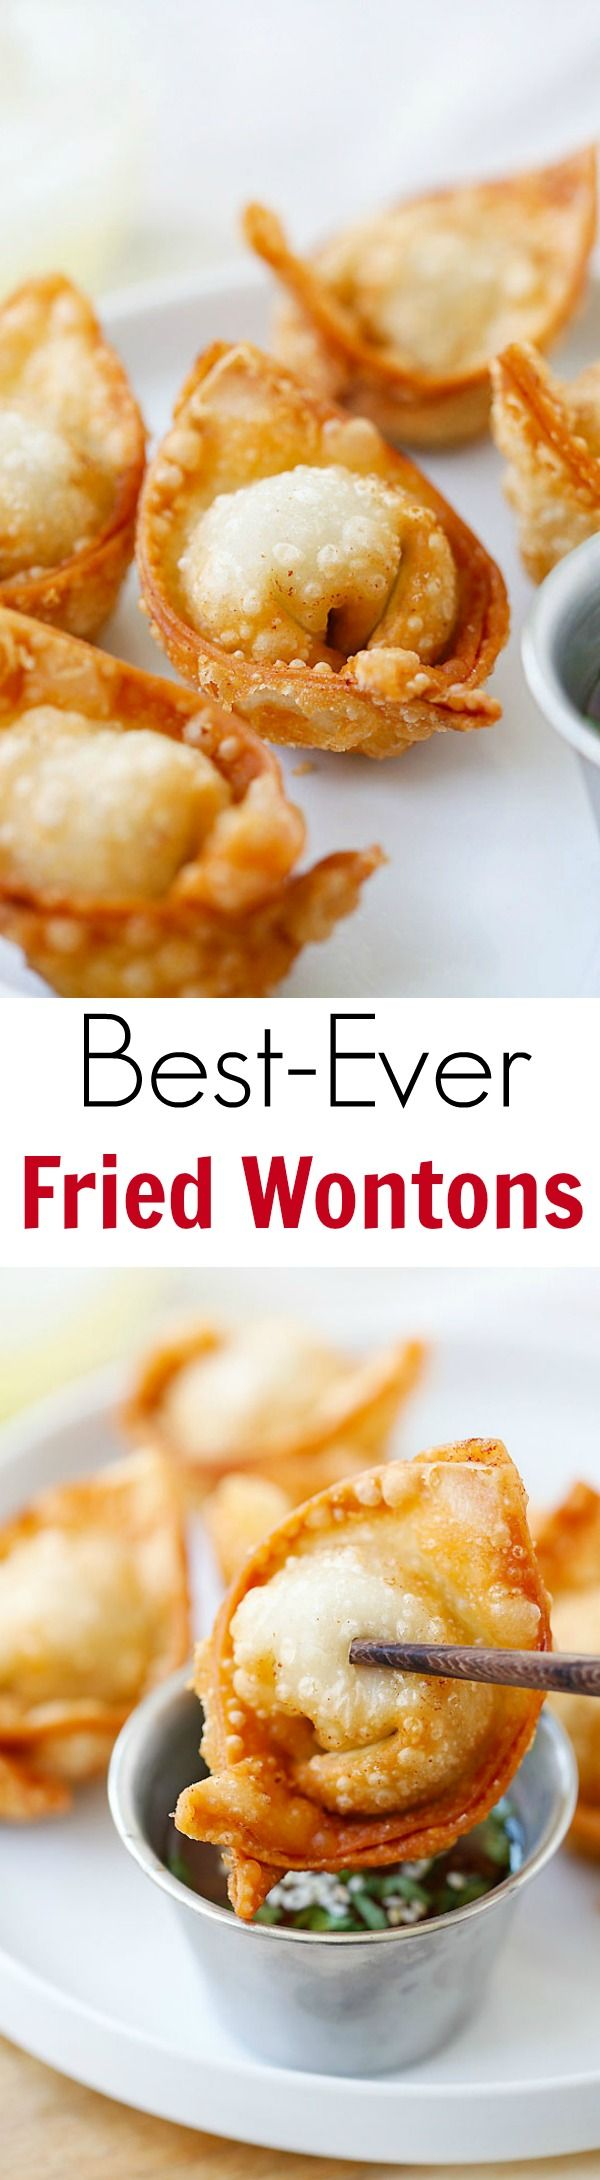 Fried wontons – the BEST fried wontons!! Super crispy and delicious, learn how to make fried wontons with this easy recipe!! | rasamalaysia.com